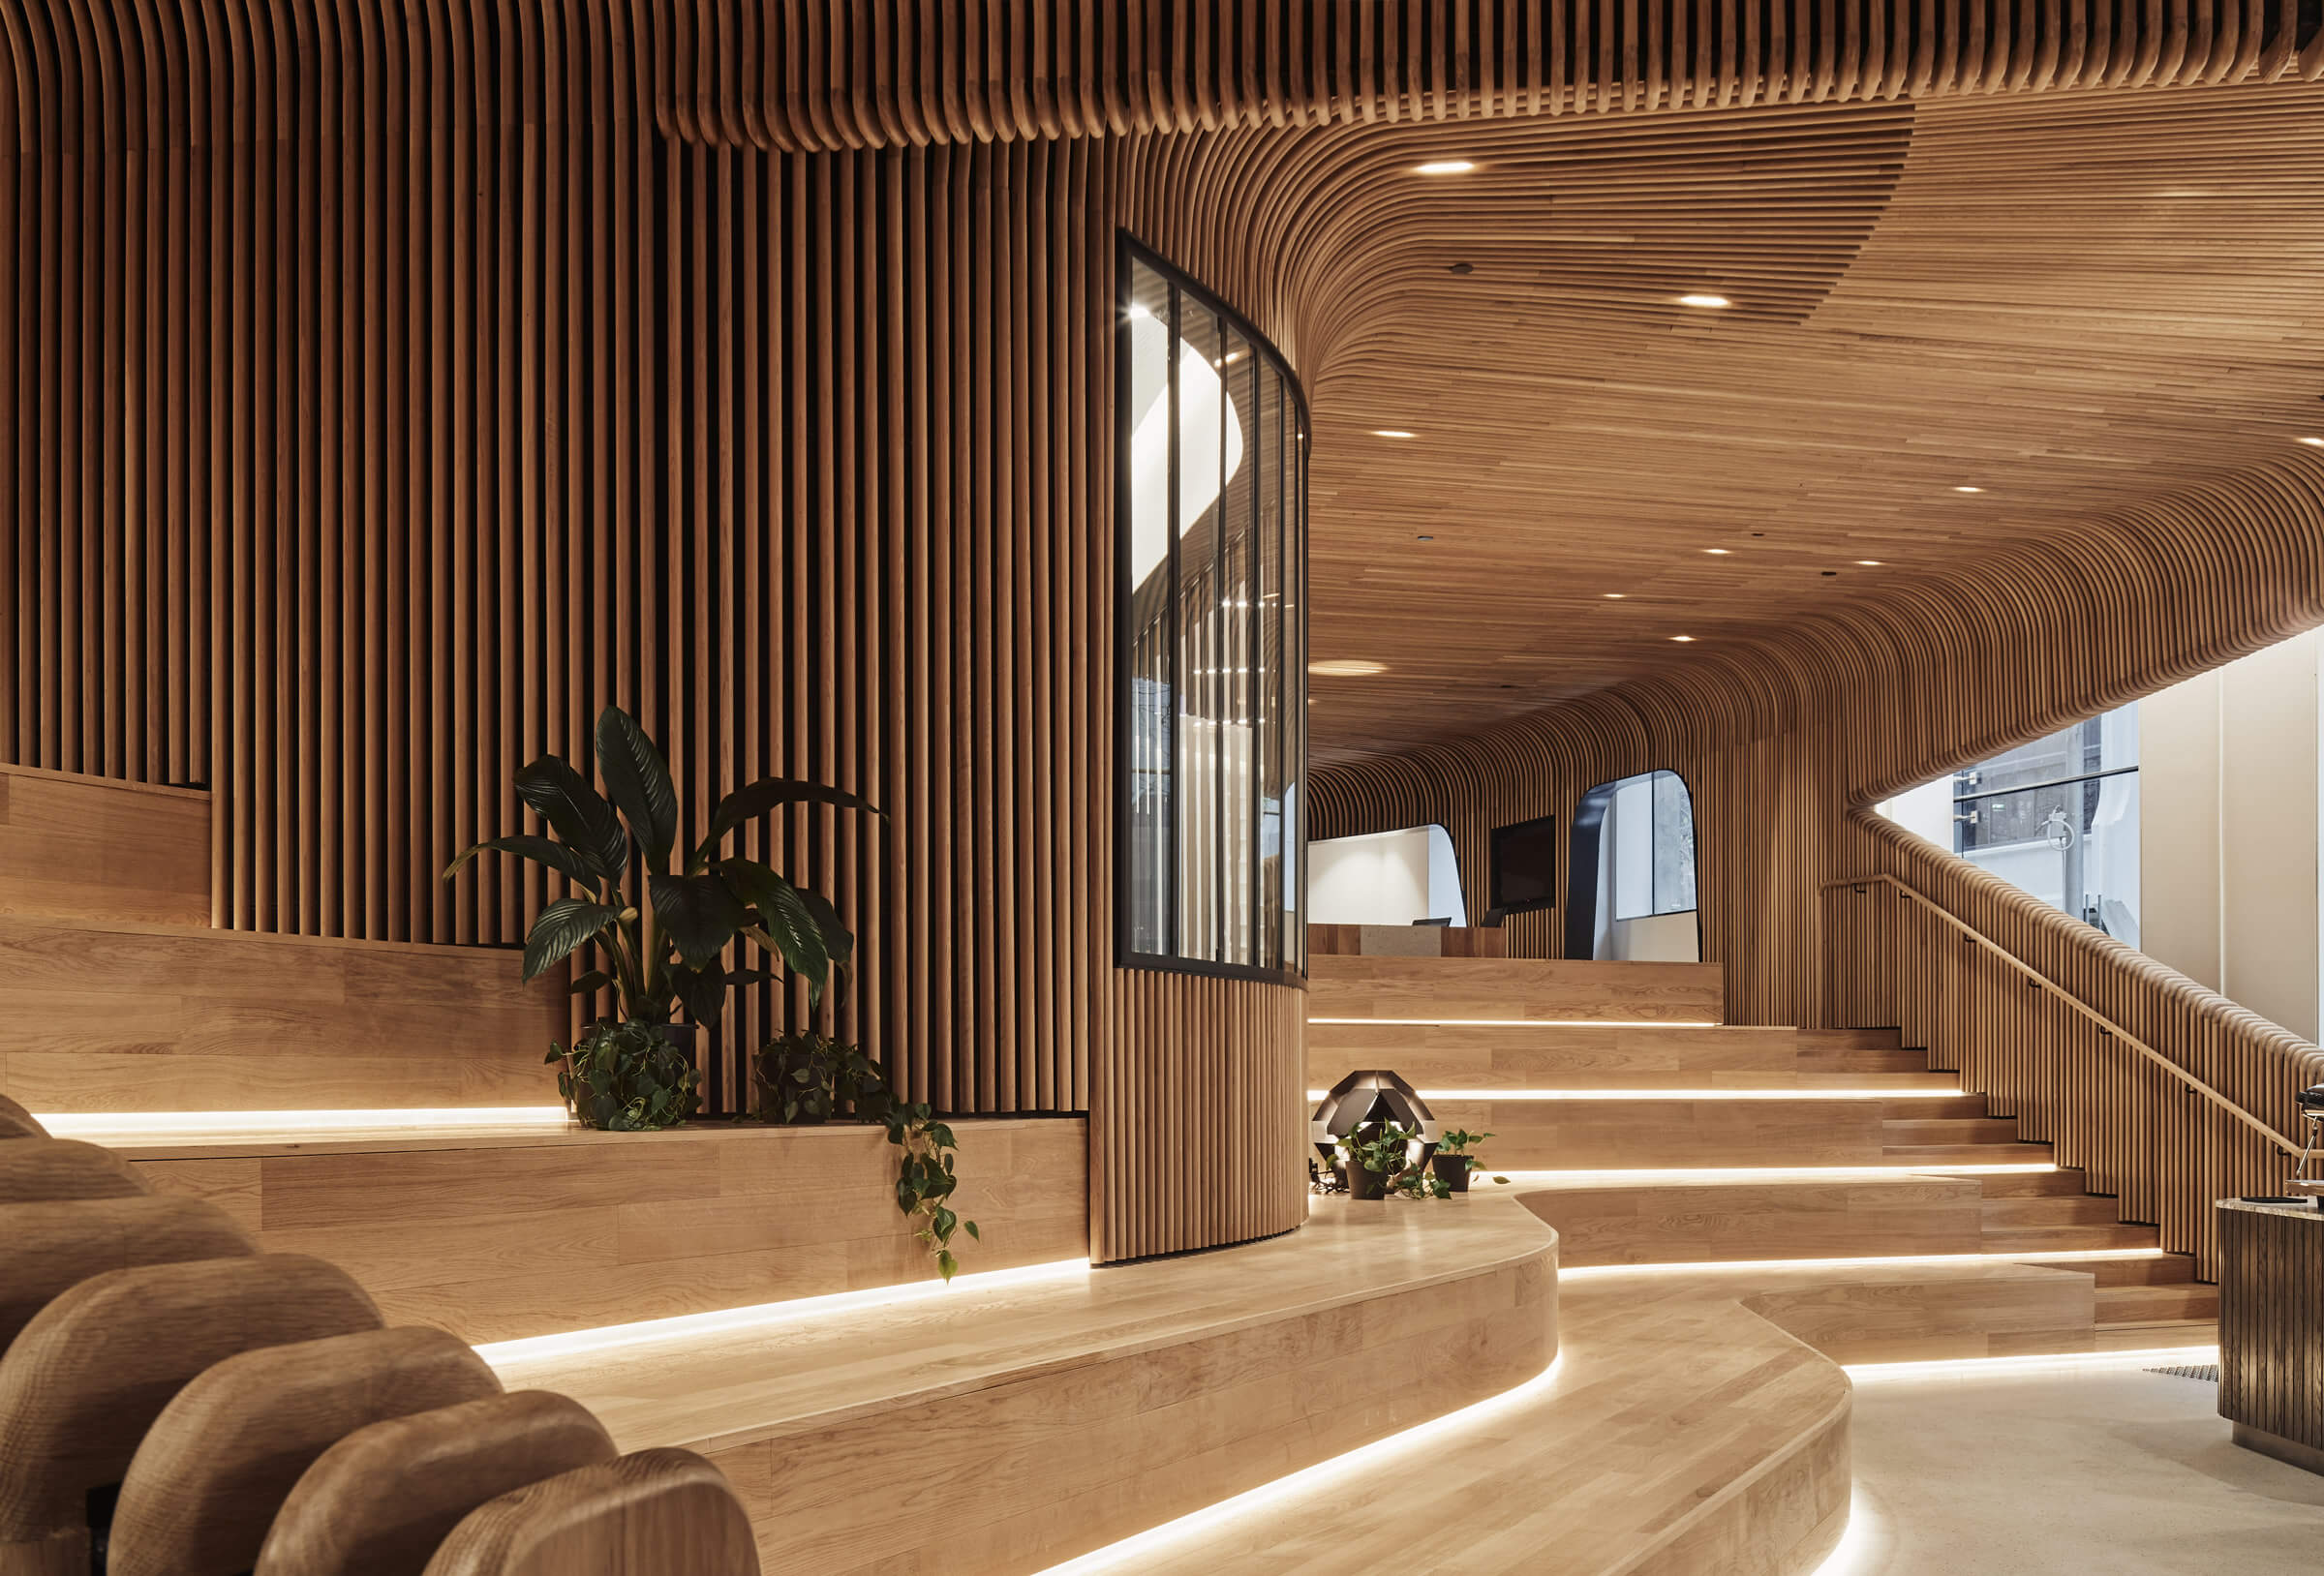 Sculptform Design Studio curved timber